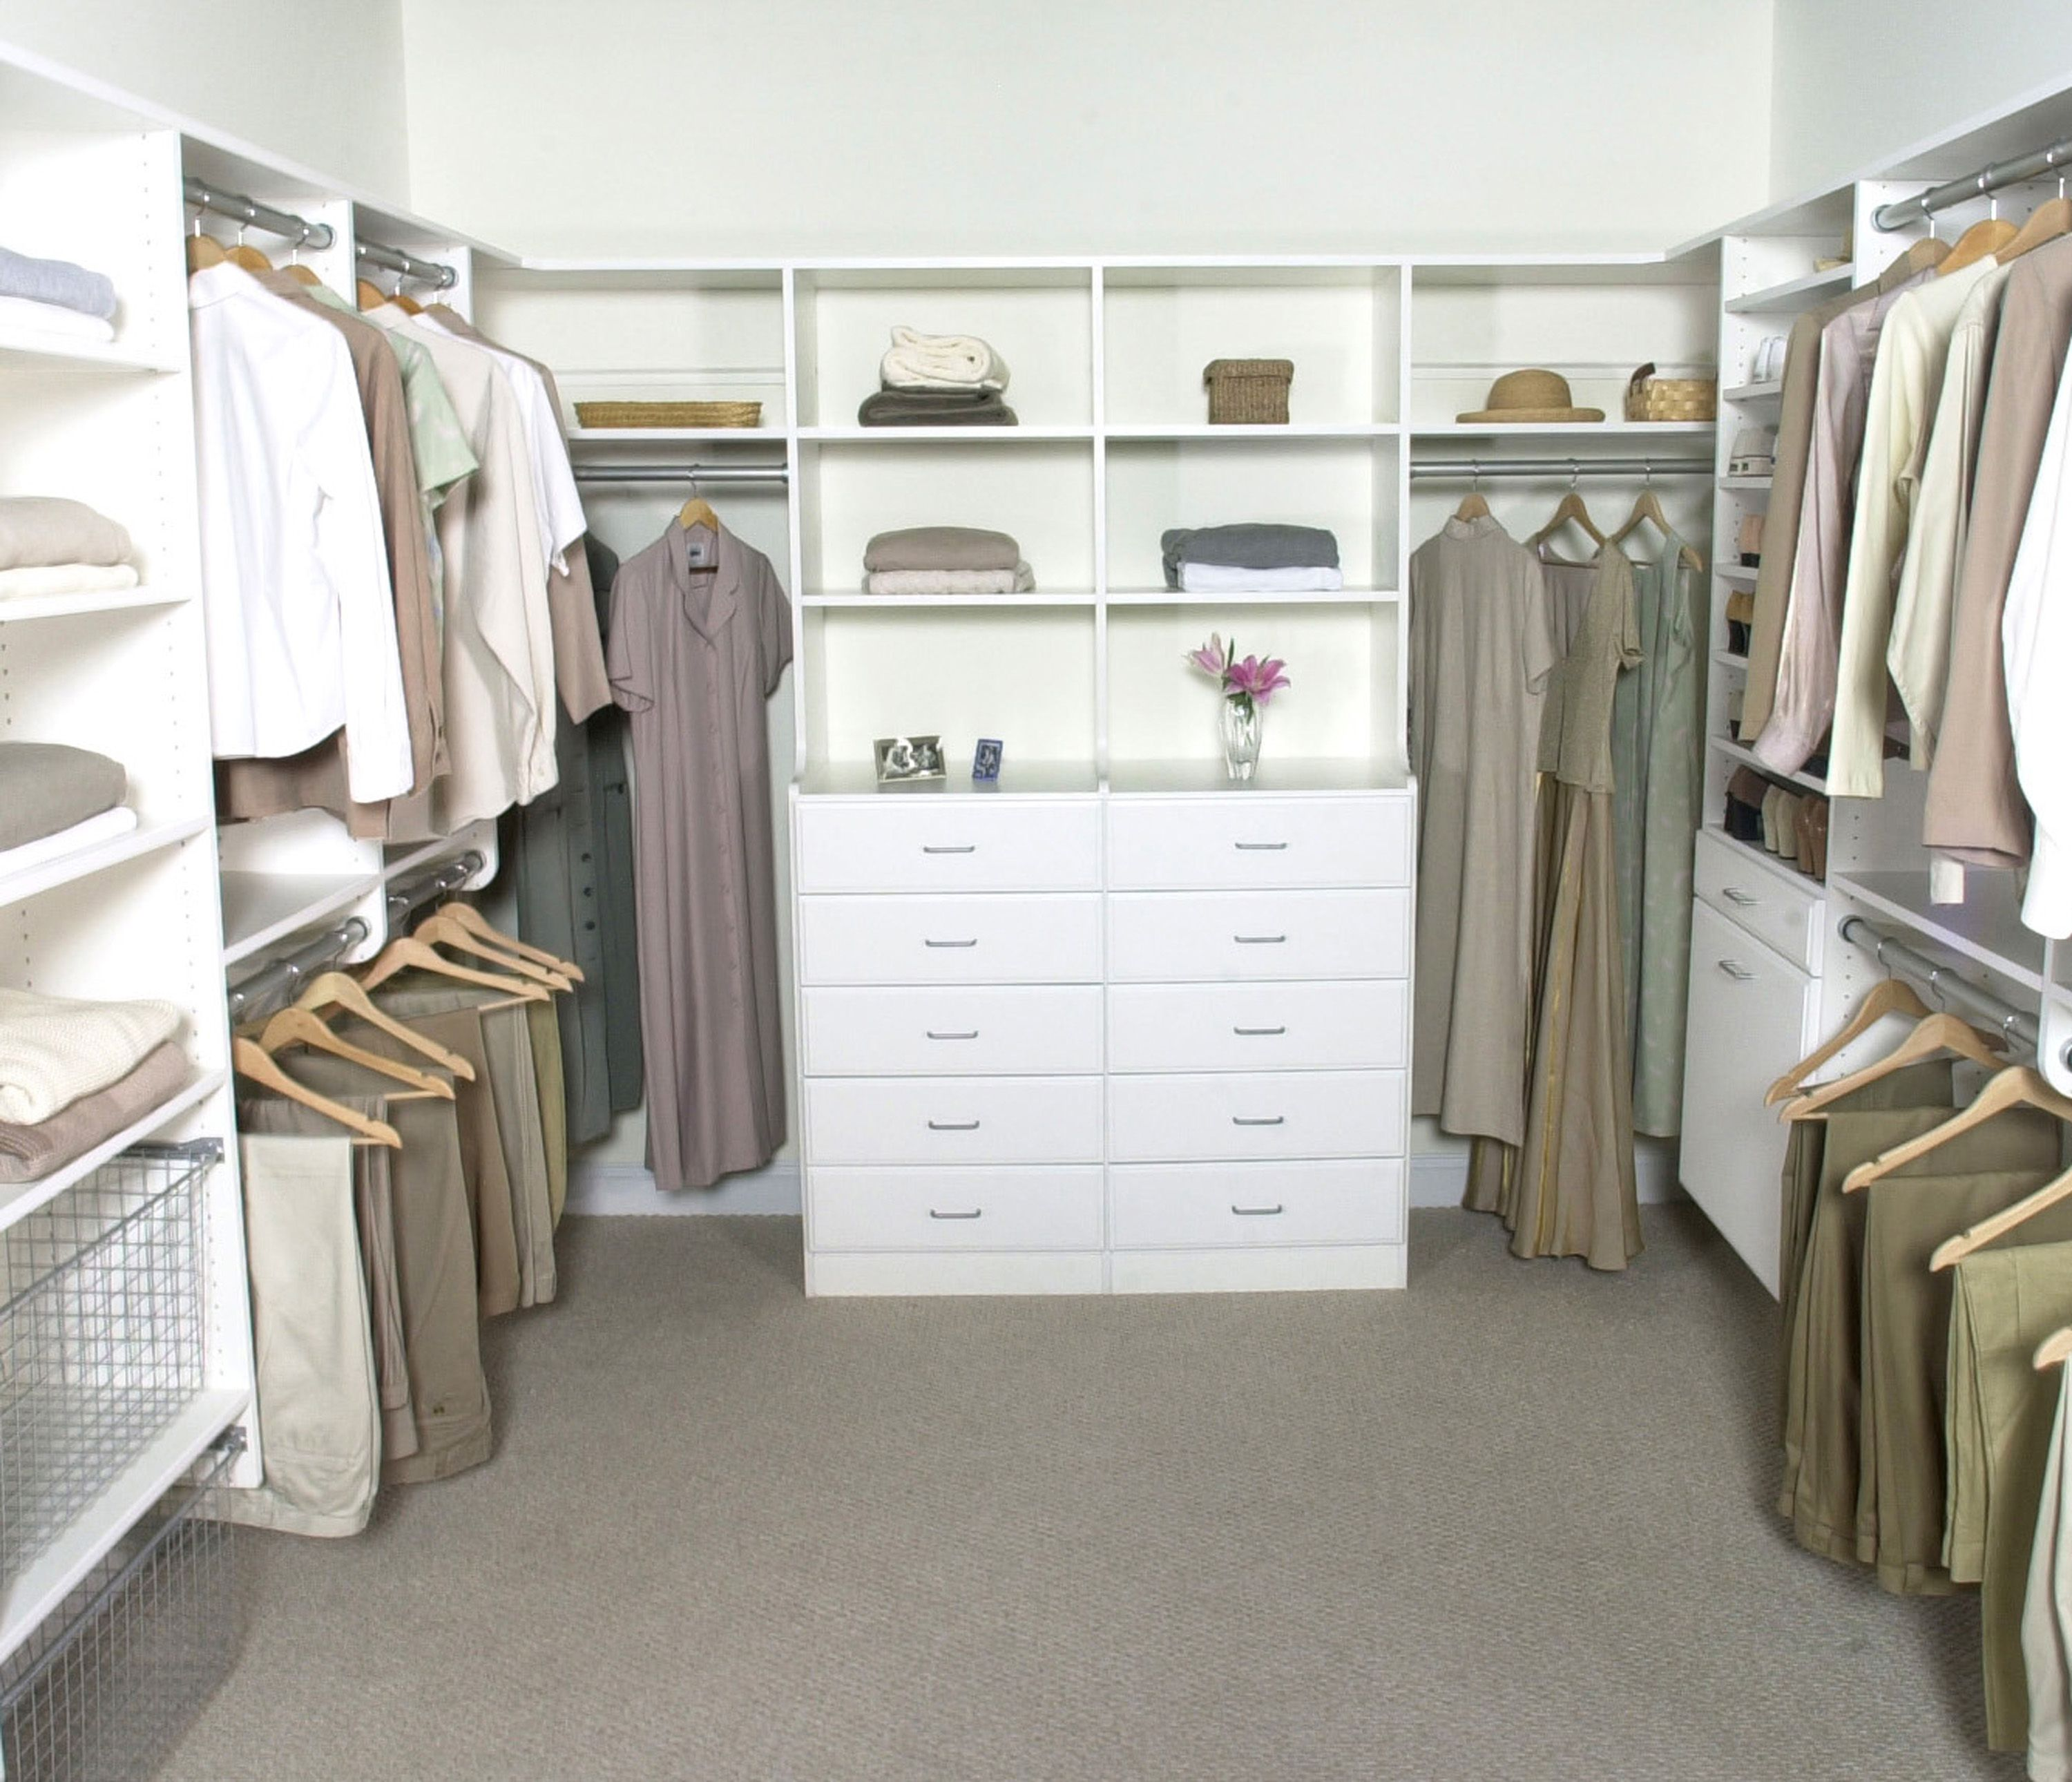 A Simple Yet Realistic Closet Design His On One Side